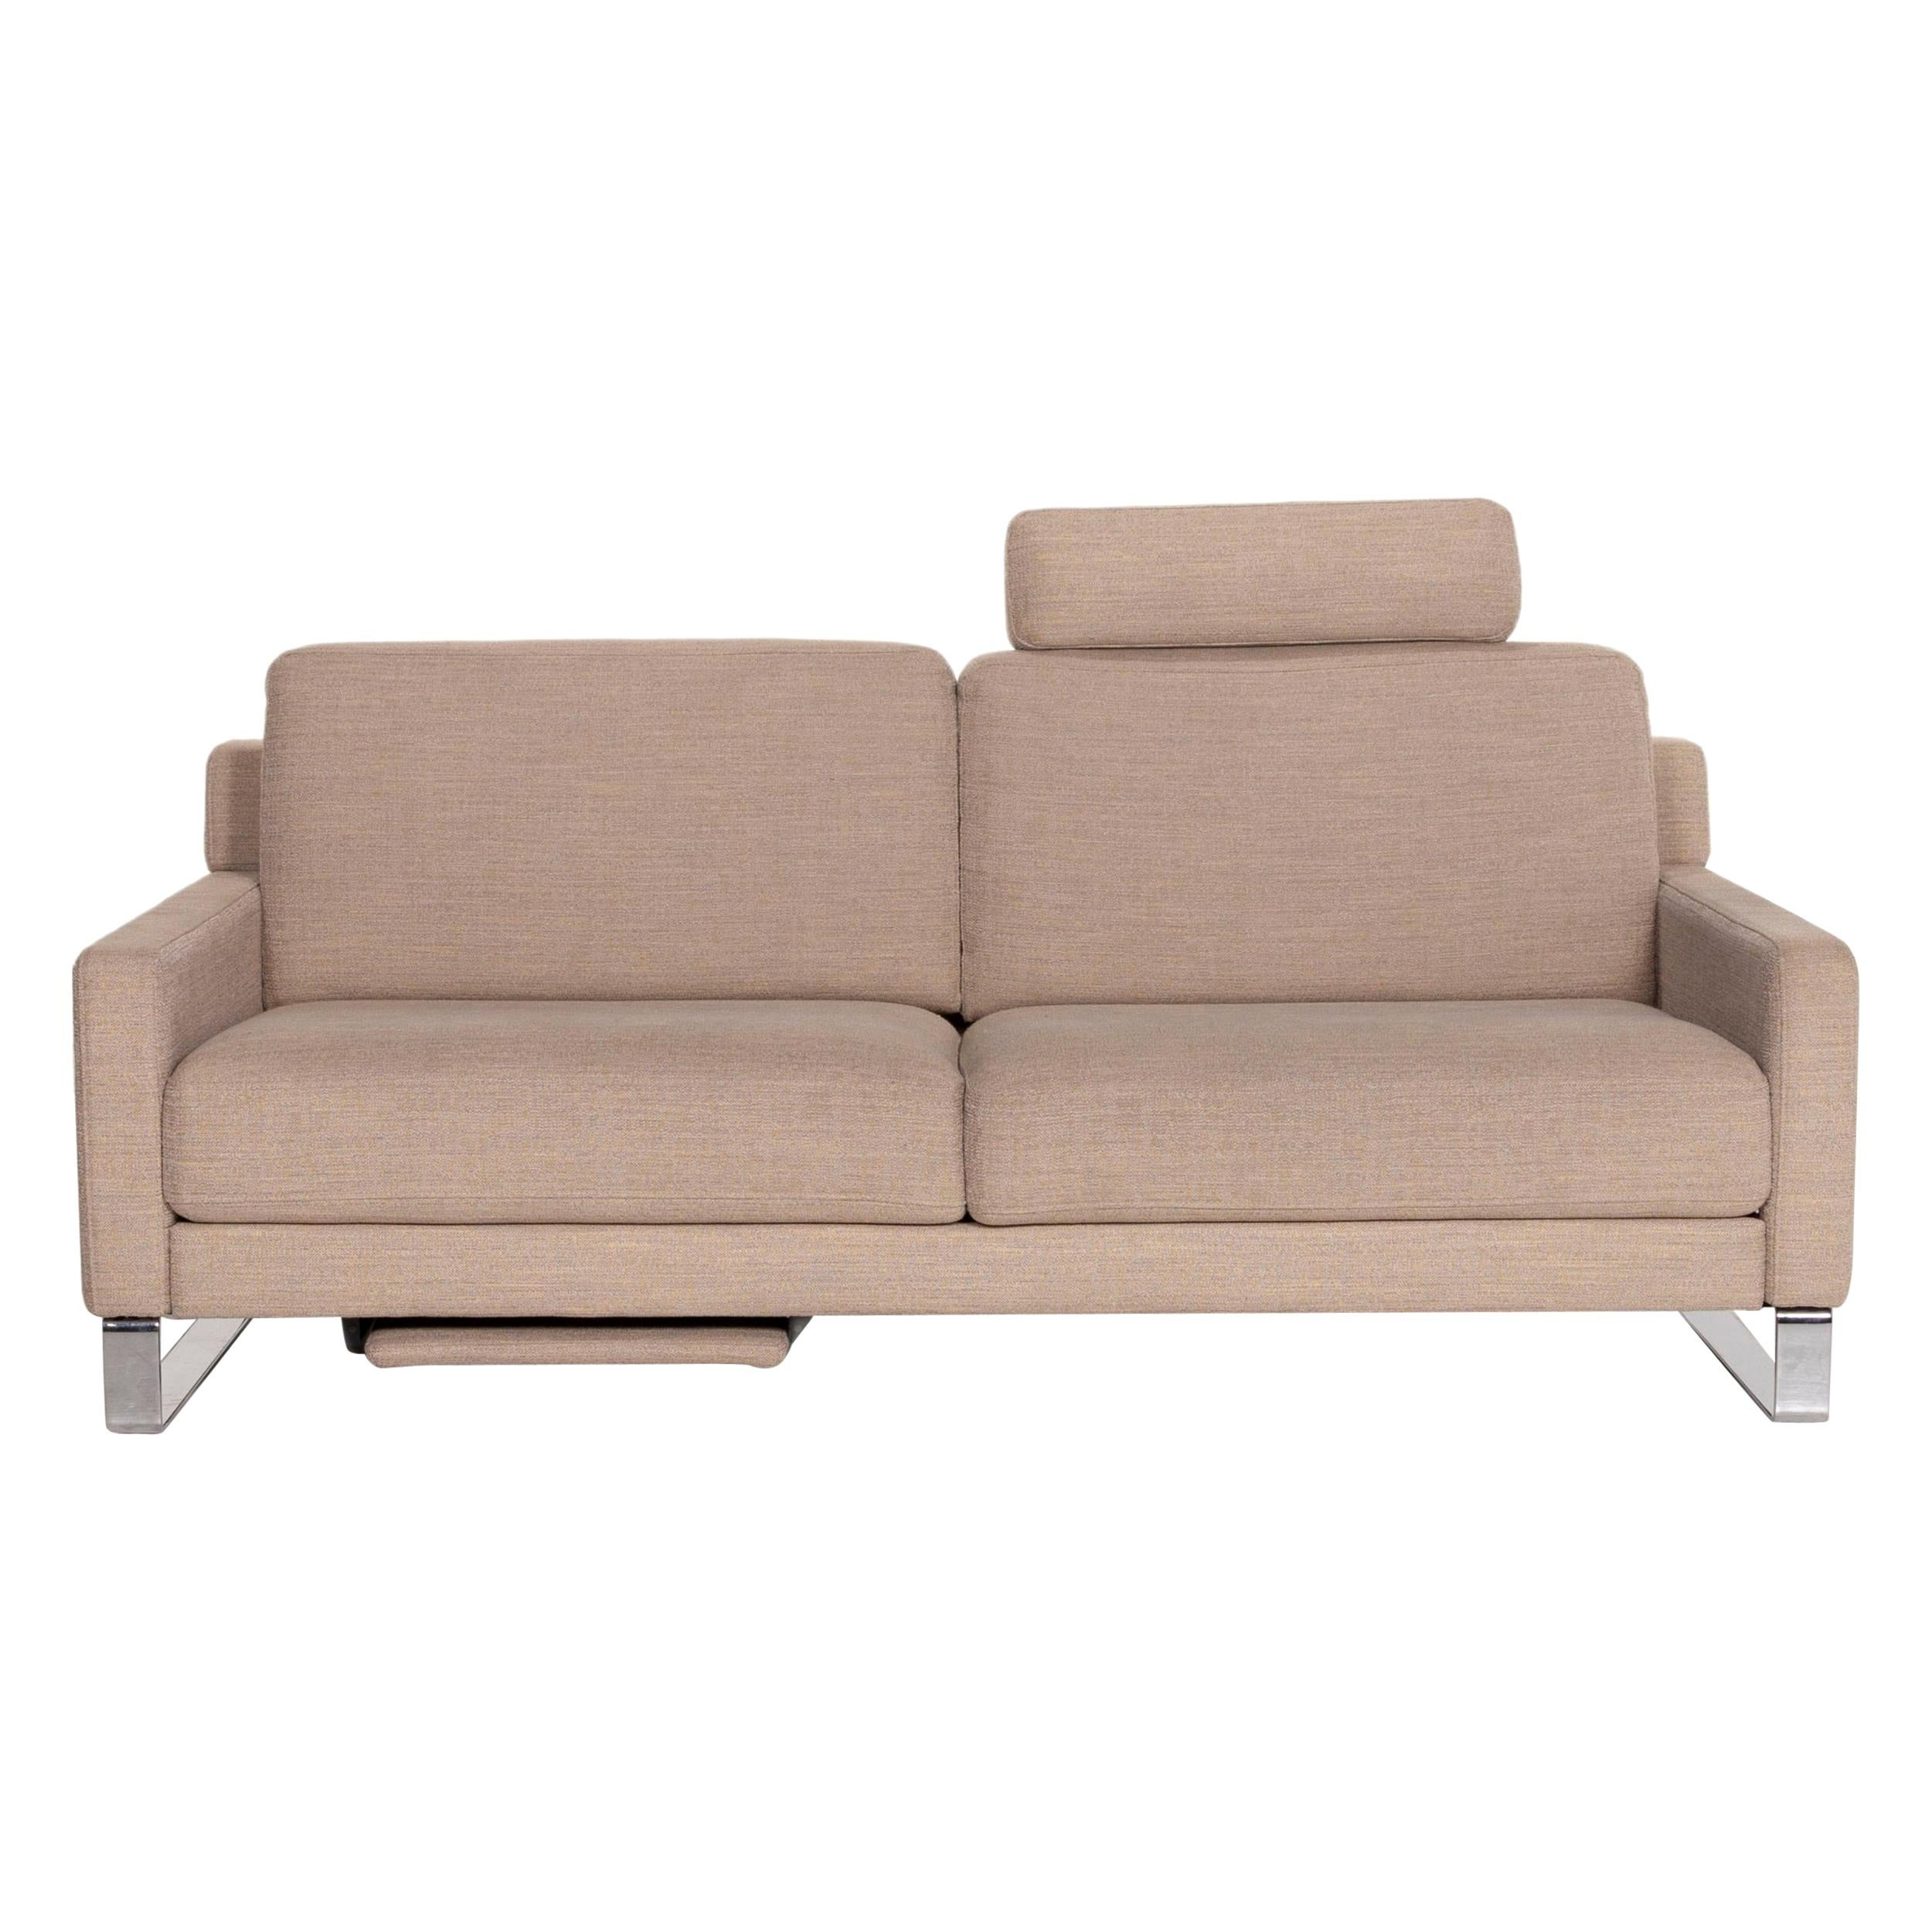 Rolf Benz Ego Fabric Sofa Beige Two-Seater